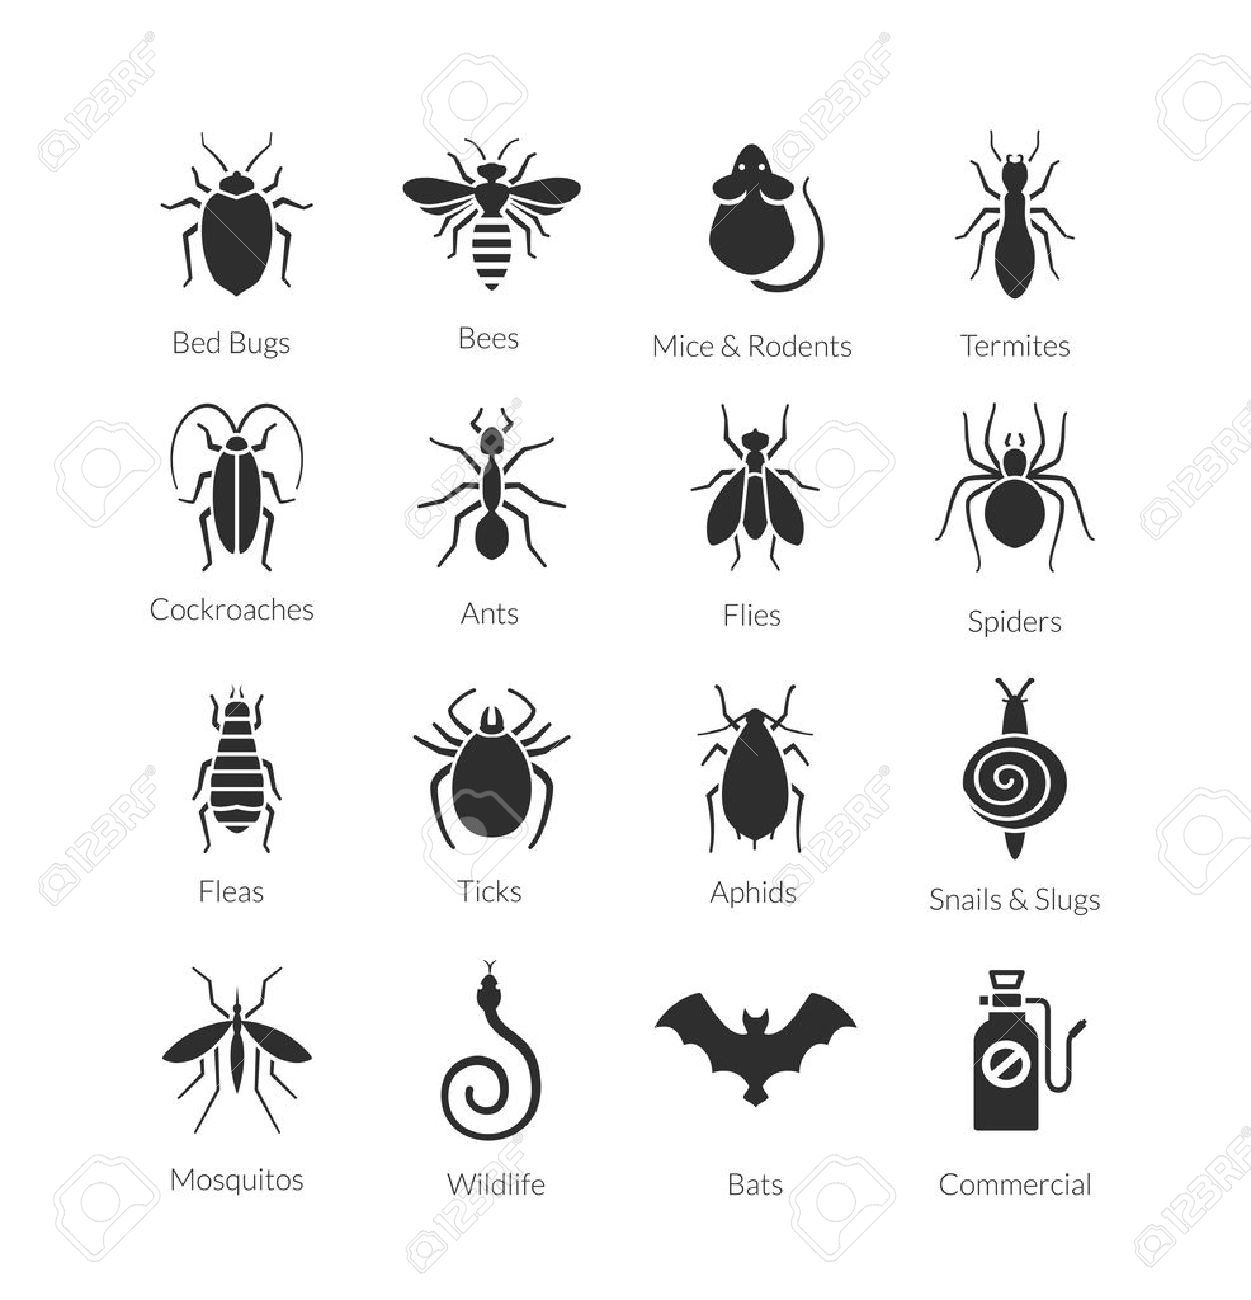 Vector black and white icon set of different insects like